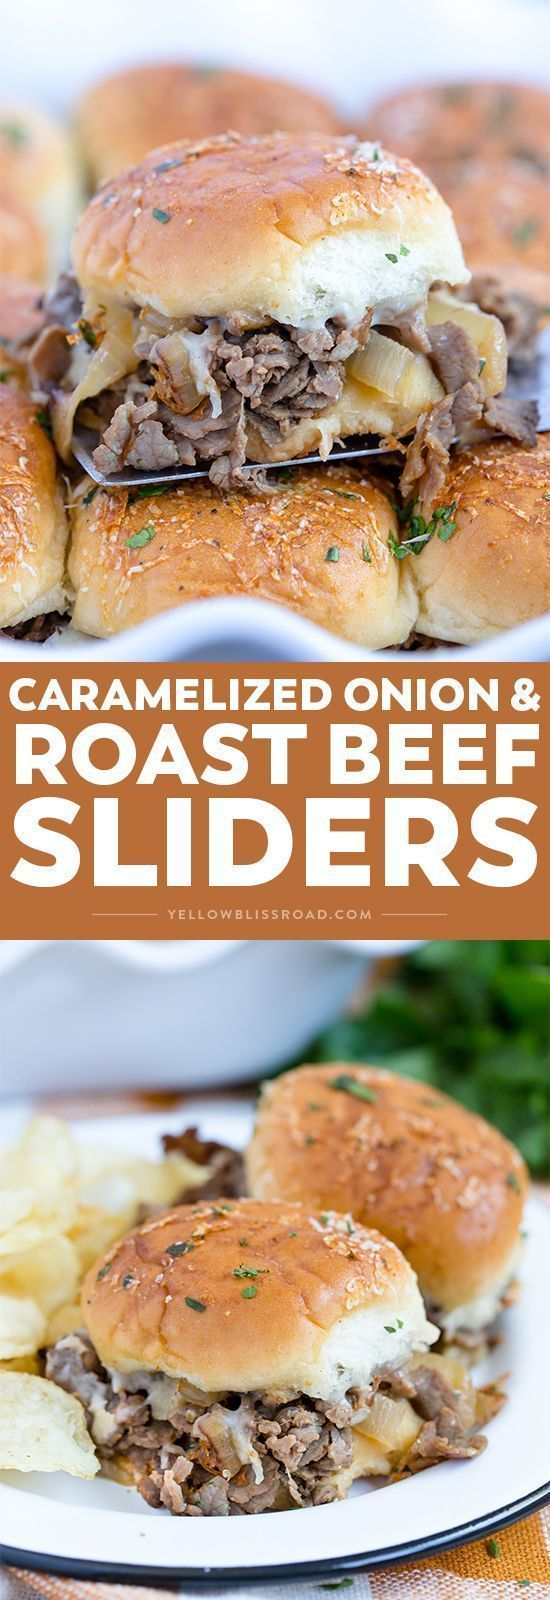 Caramelized Onion & Asiago Roast Beef Sliders will win game day! Mini baked sandwiches that are perfect for feeding a crowd or dinner for your family.